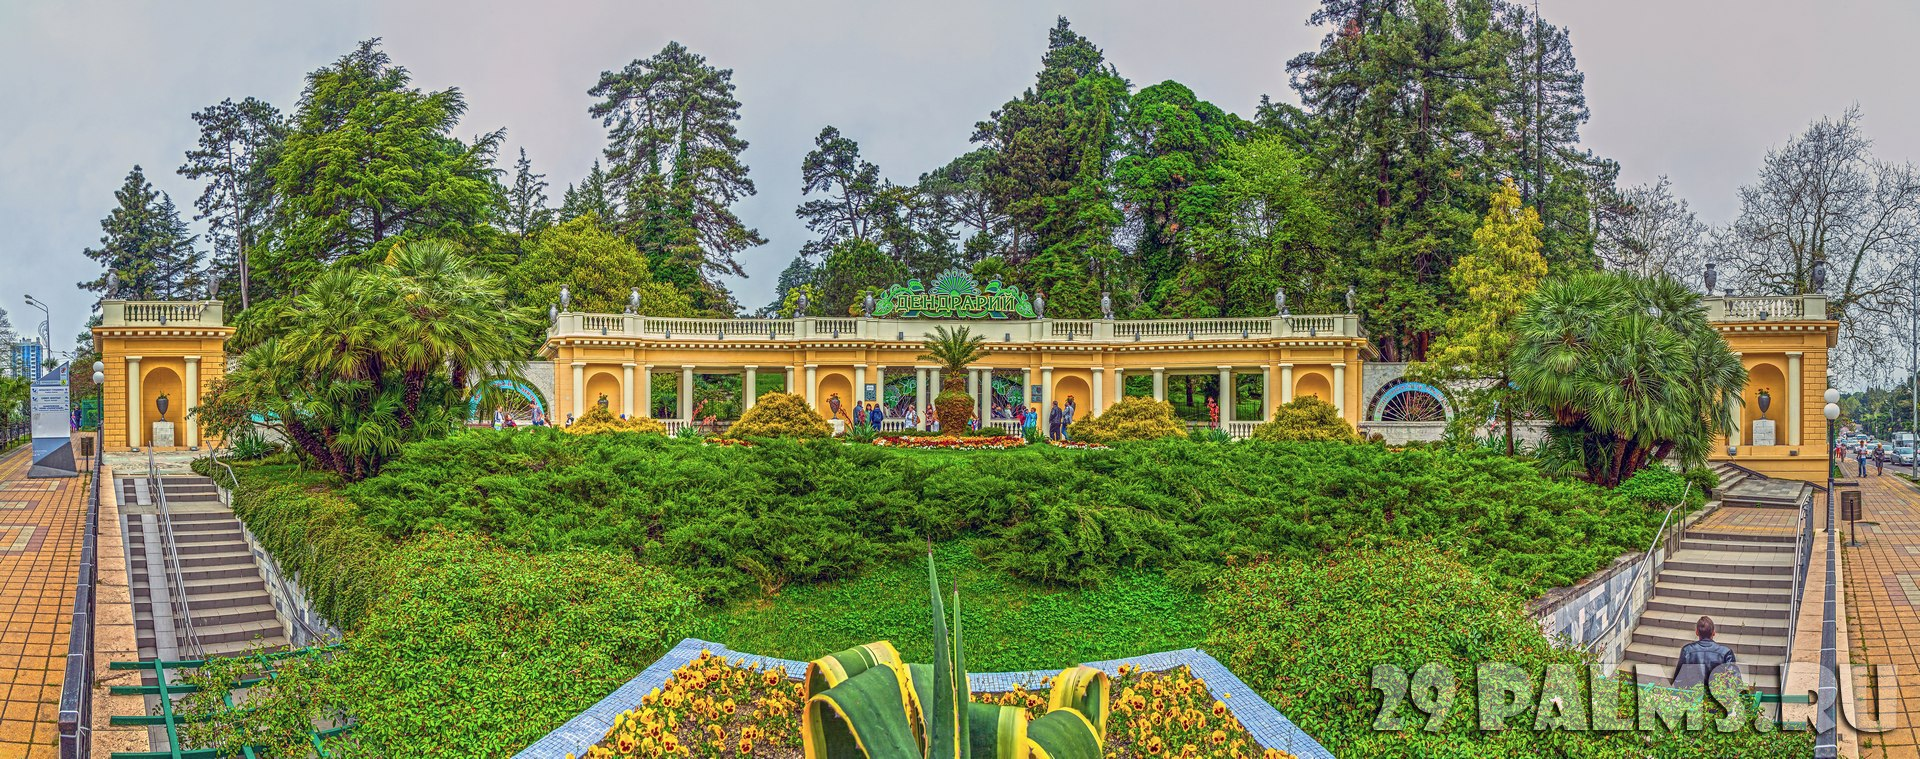 Россия. Сочи. Парк Дендрарий. Panoramic of entrance to the Arboretum. Sochi, Russia. Фото Sivenkov - Depositphotos